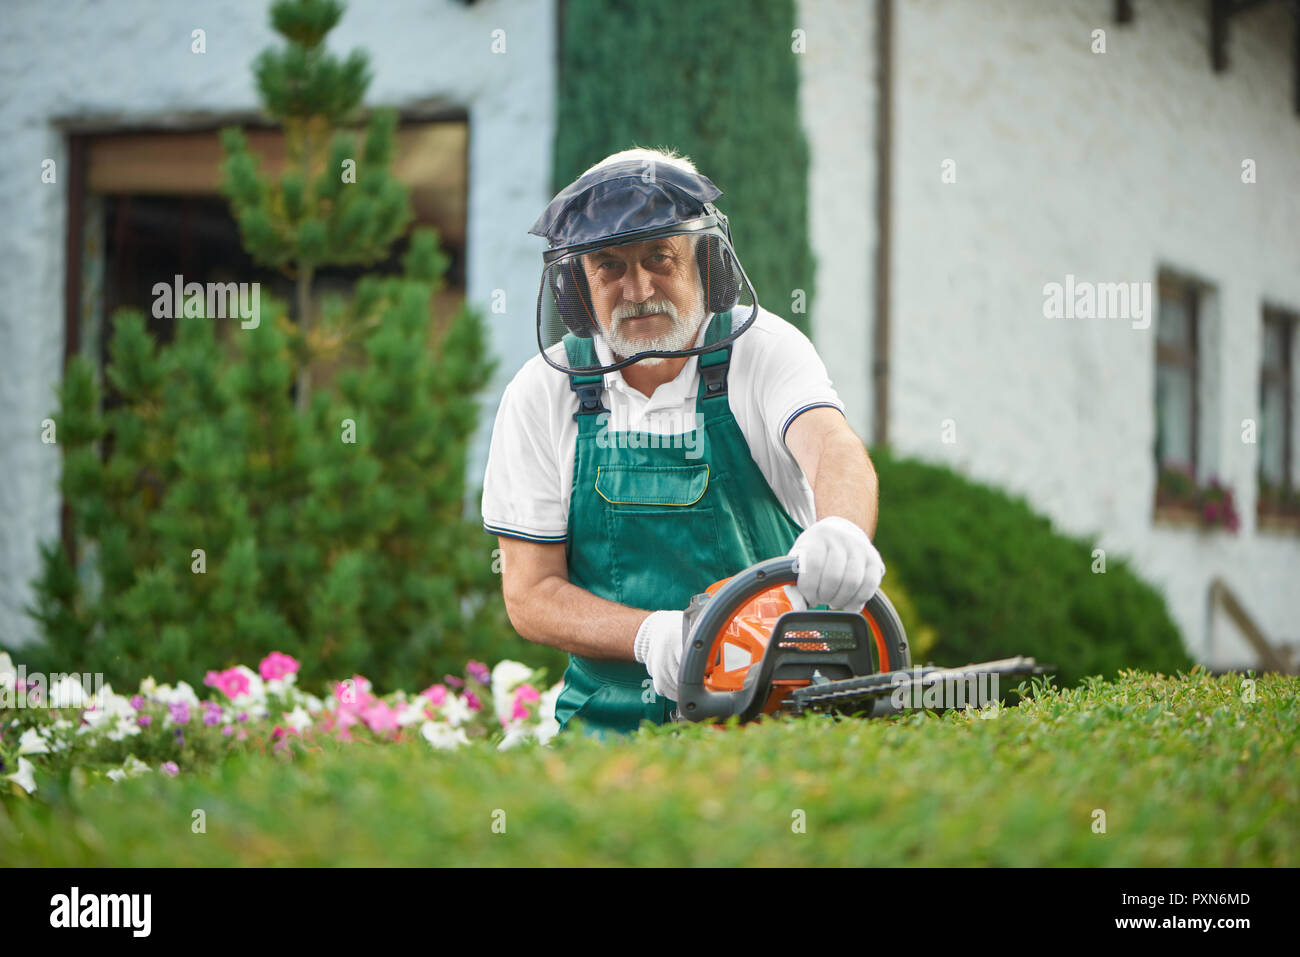 Adult man wearing in green overalls with safety mask and protective headphones landscaping bushes with petrol hedge cutter. Male gardener working with professional equipment and looking at camera. - Stock Image